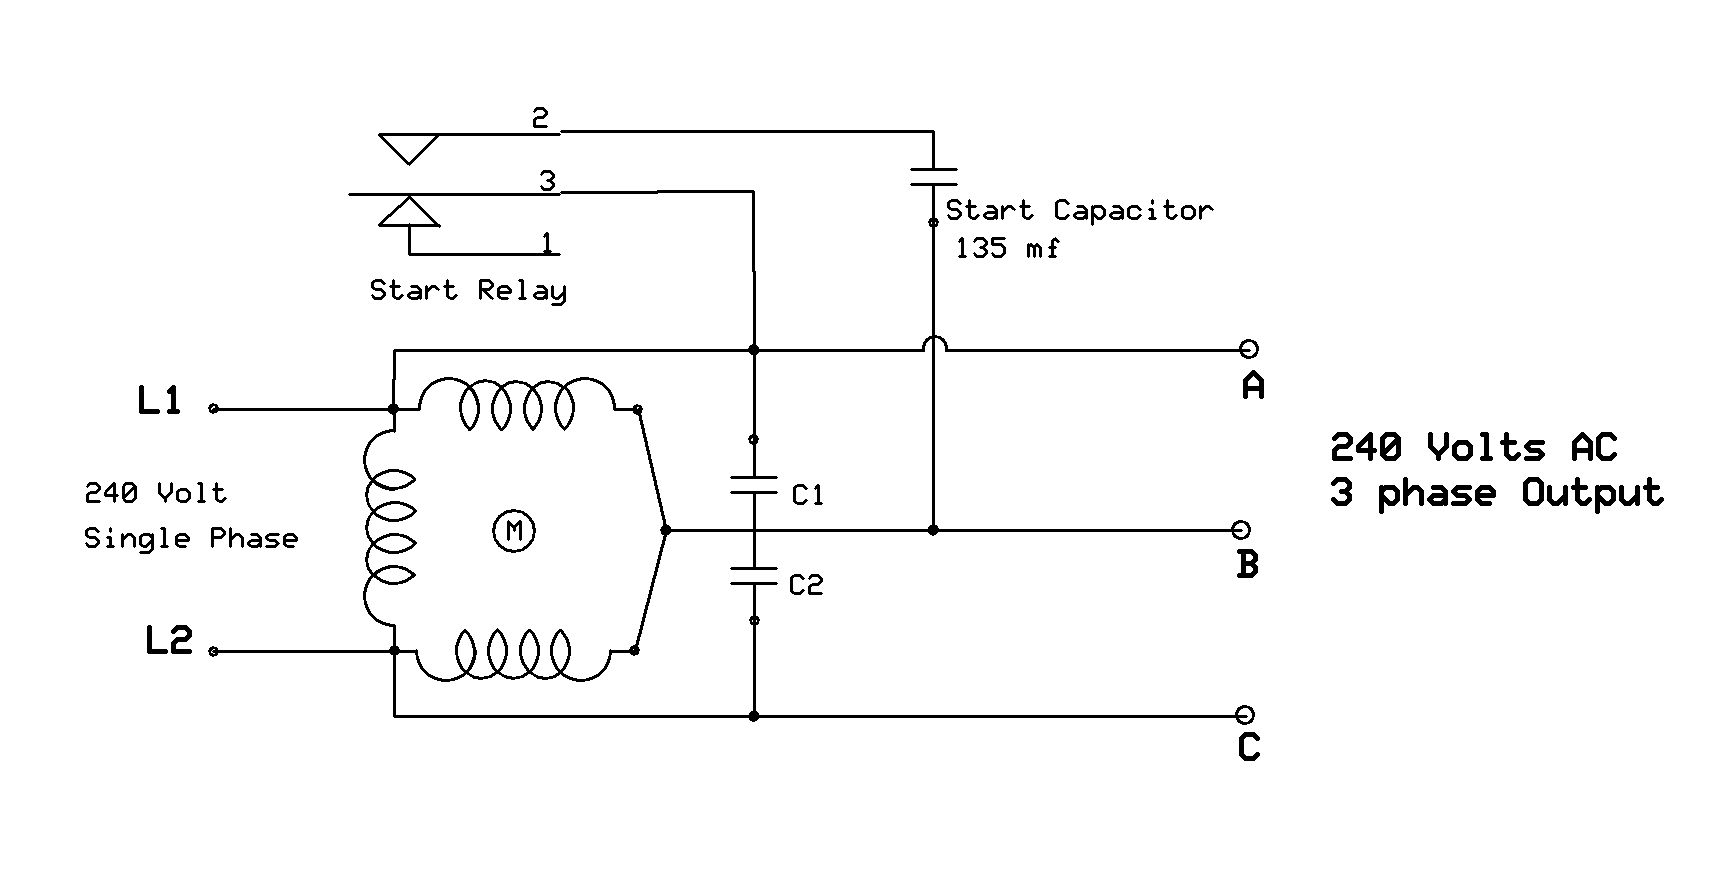 5628d1218421482 motor turns slowly rpc power 1ph_3phmotor single phase motor wiring diagram on 110 volt 3 phase wiring diagram